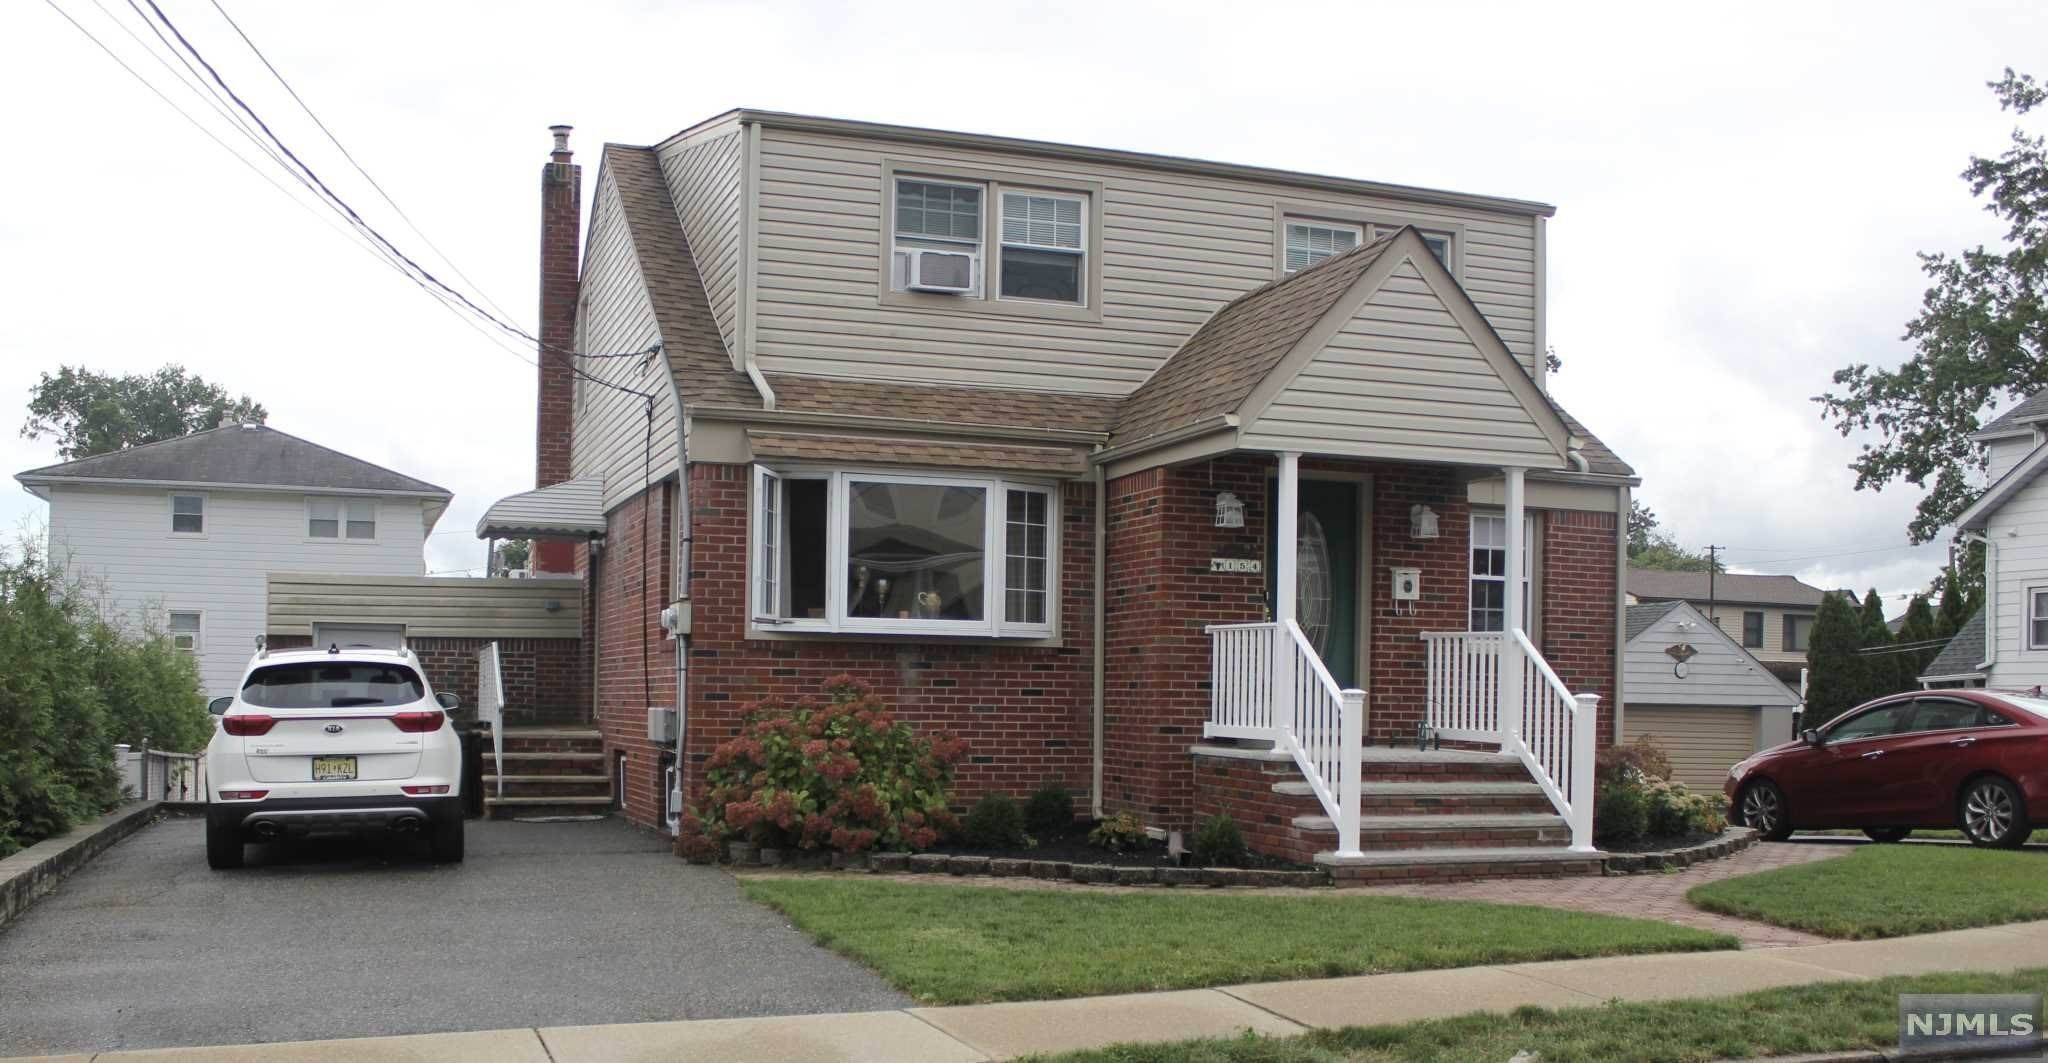 Rental Communities for Rent at 154 Orchard Street #2 Elmwood Park, New Jersey, 07407 United States